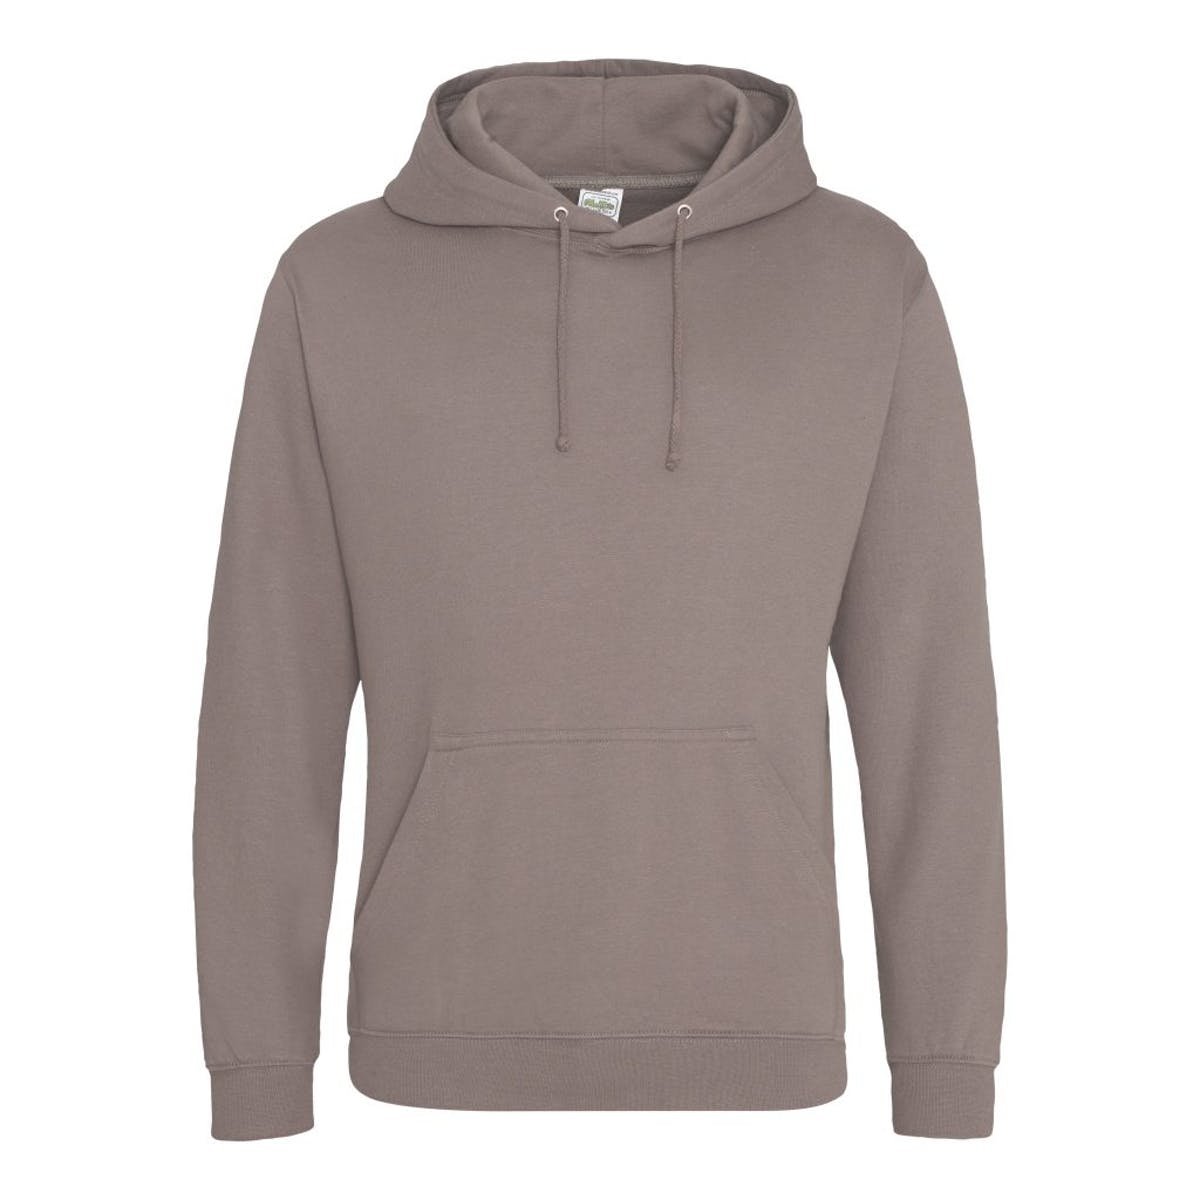 mocha college hoodies